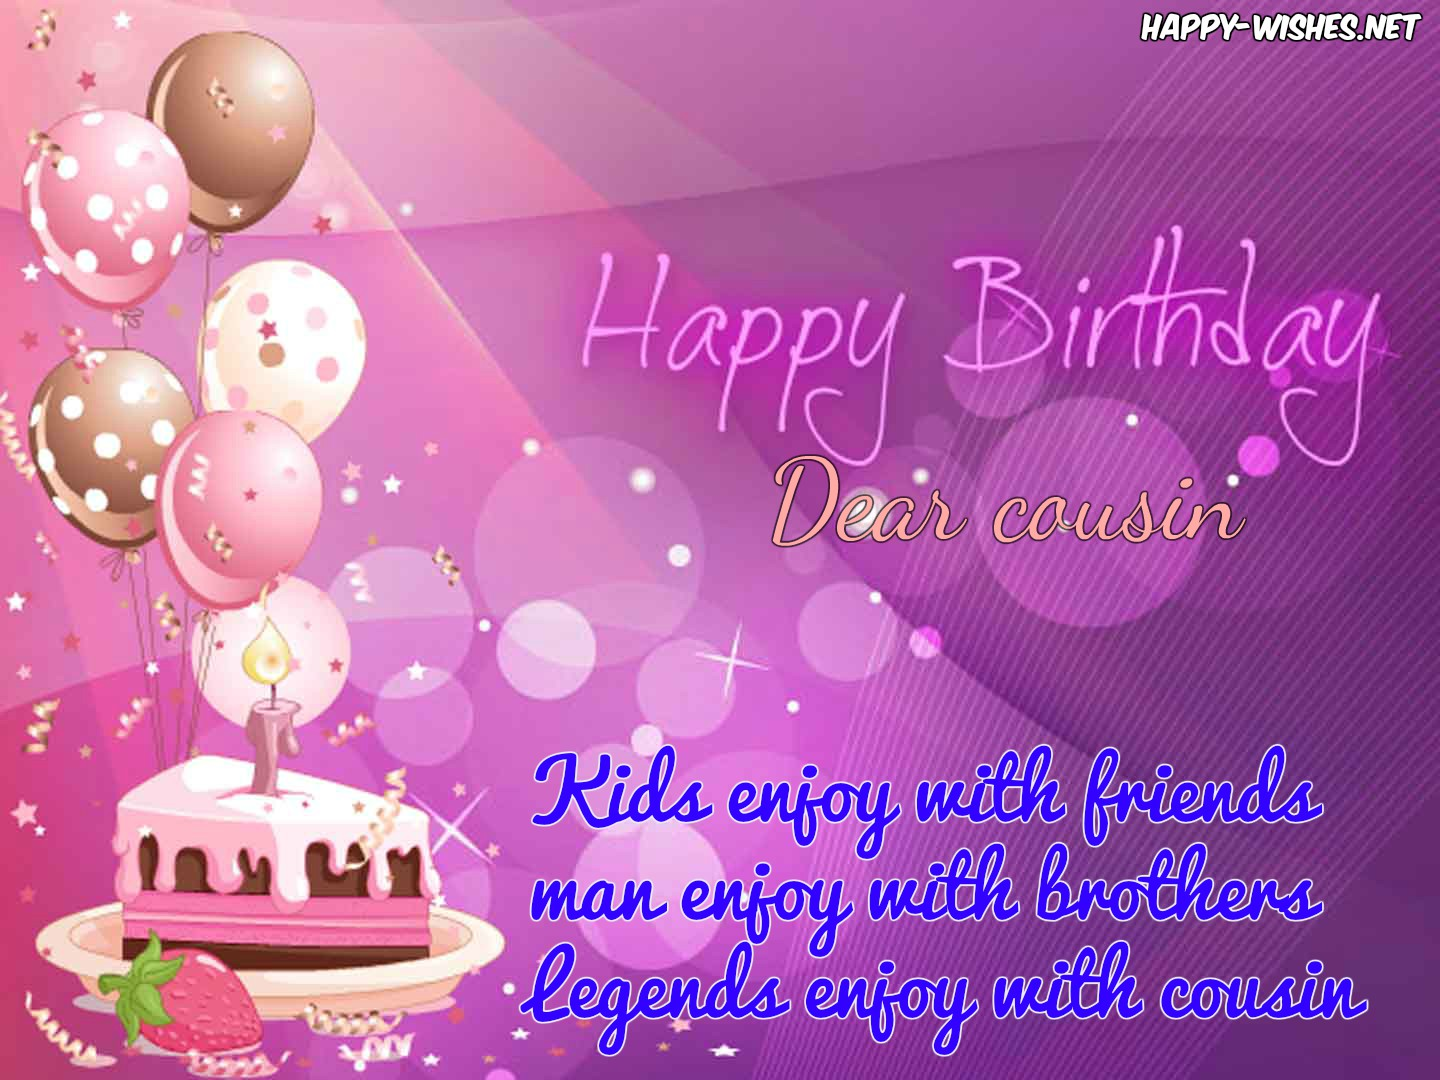 happy birthday cousin images for her ; 8233c607397ff2be2afdf2e0f56f9f02